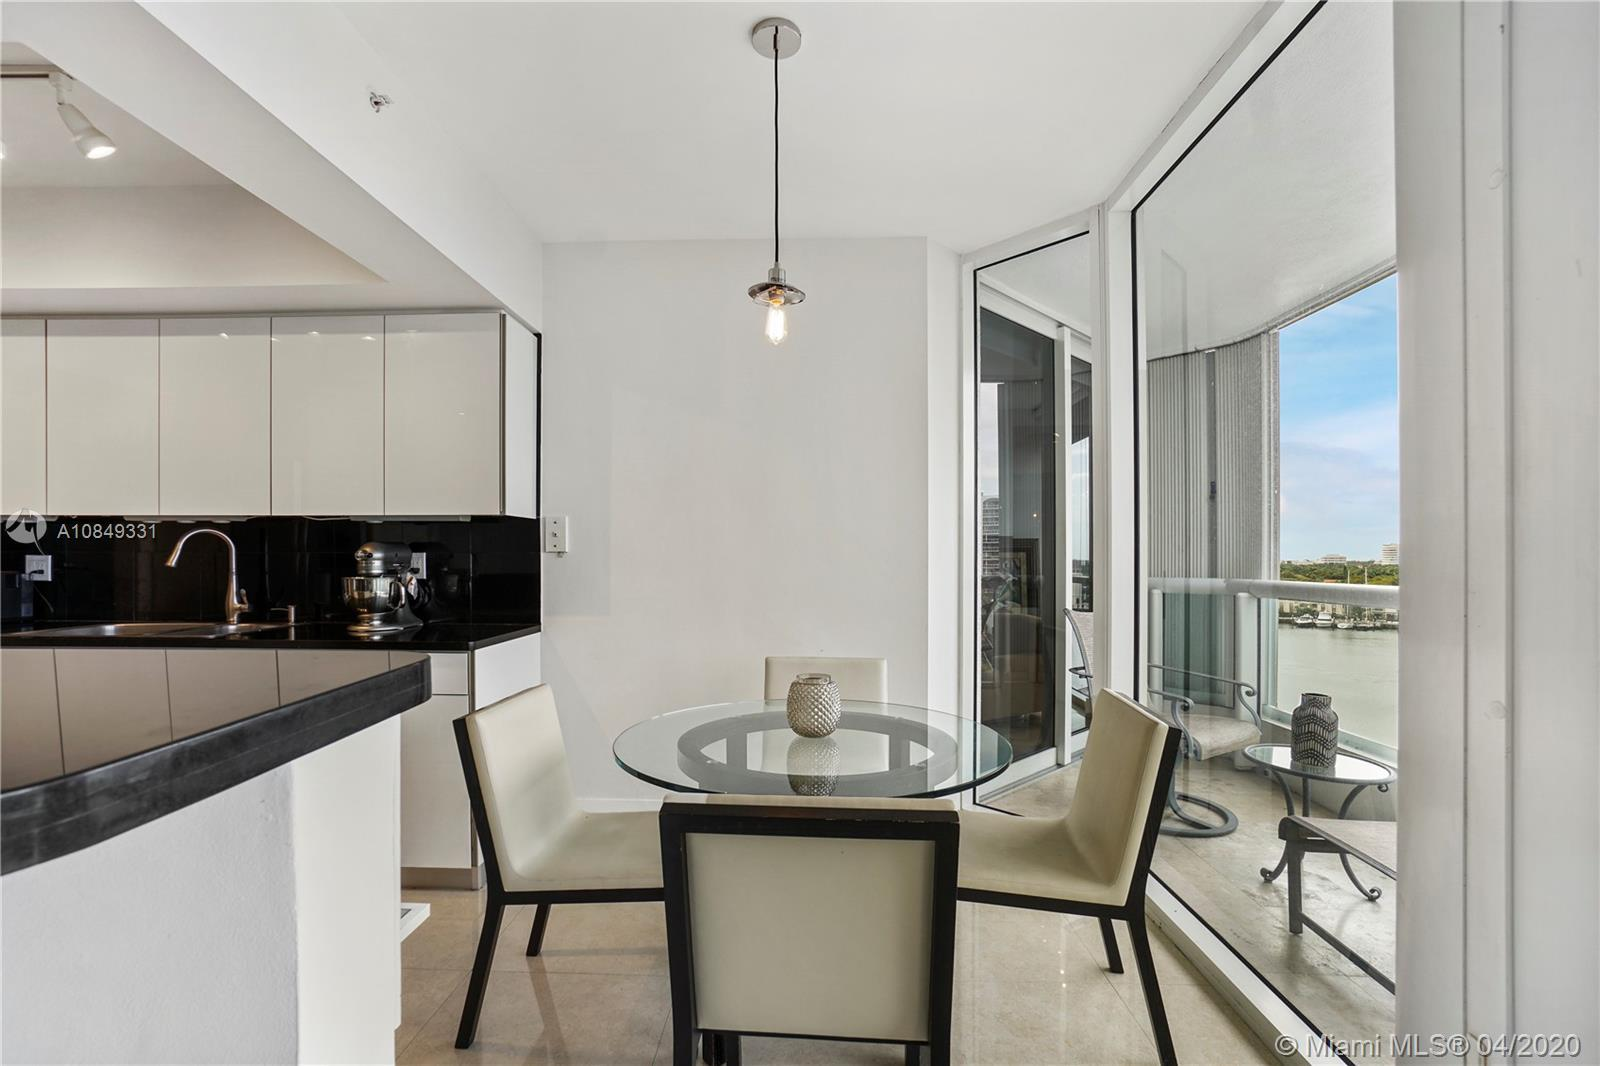 Renovated harbor view 2/2 residence in the luxurious South Tower at the Point Aventura. This mint co